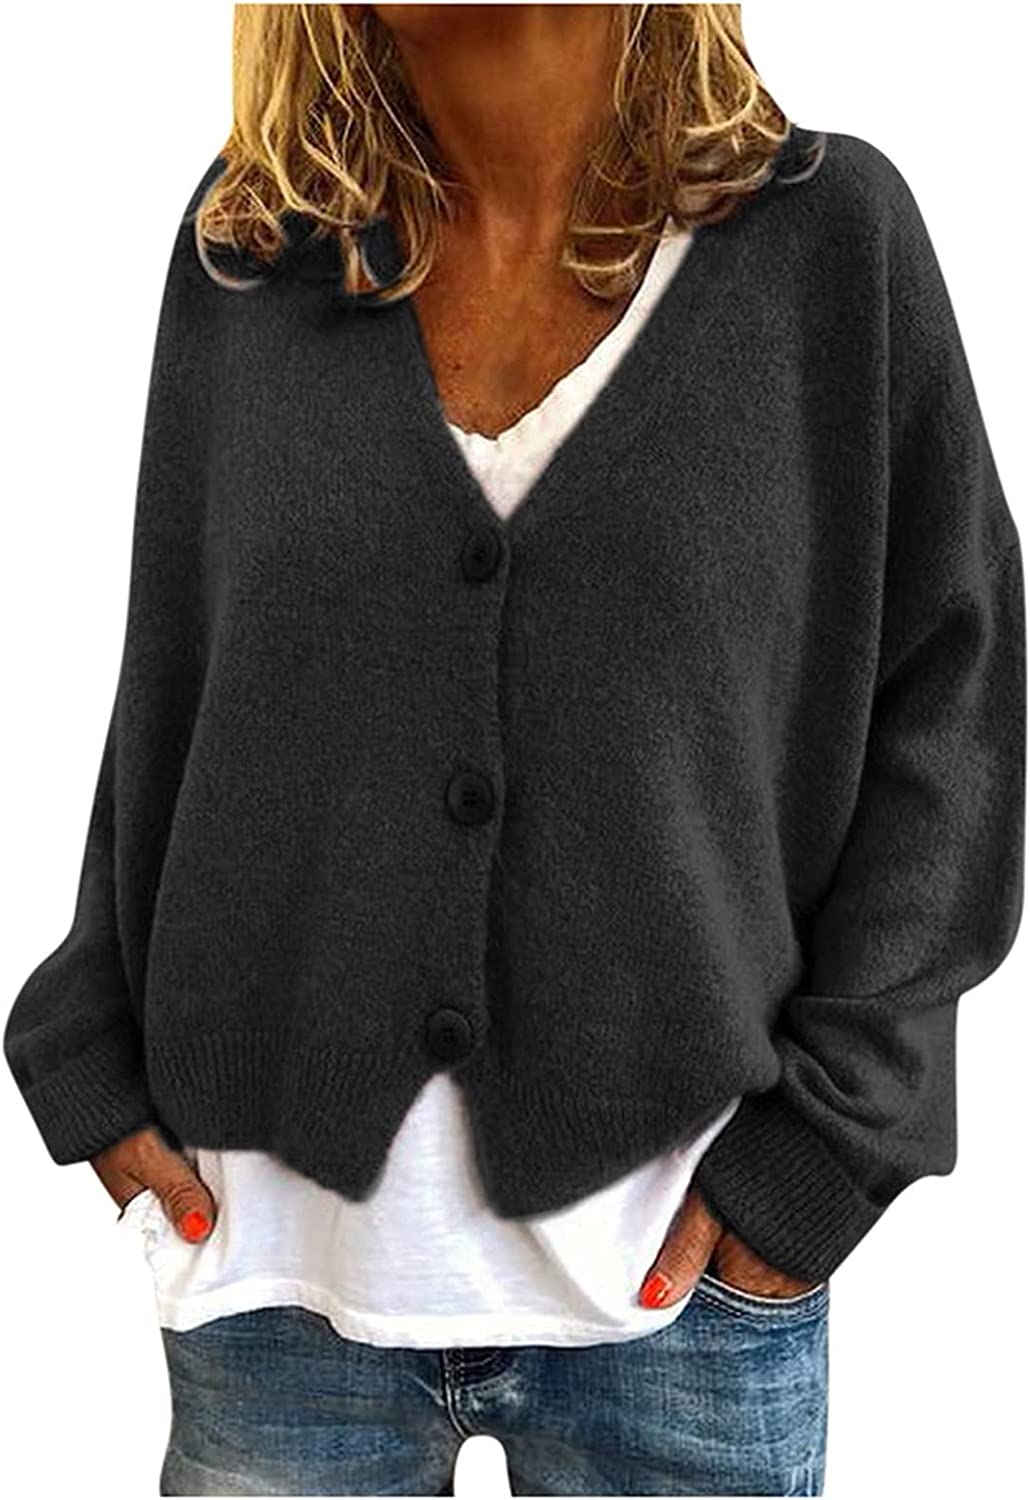 YfiDSJFGJ Knitted Sweaters for Women Long Sleeve Solid Color Knitted V-Neck Buttons,Pullover Sweaters Tops